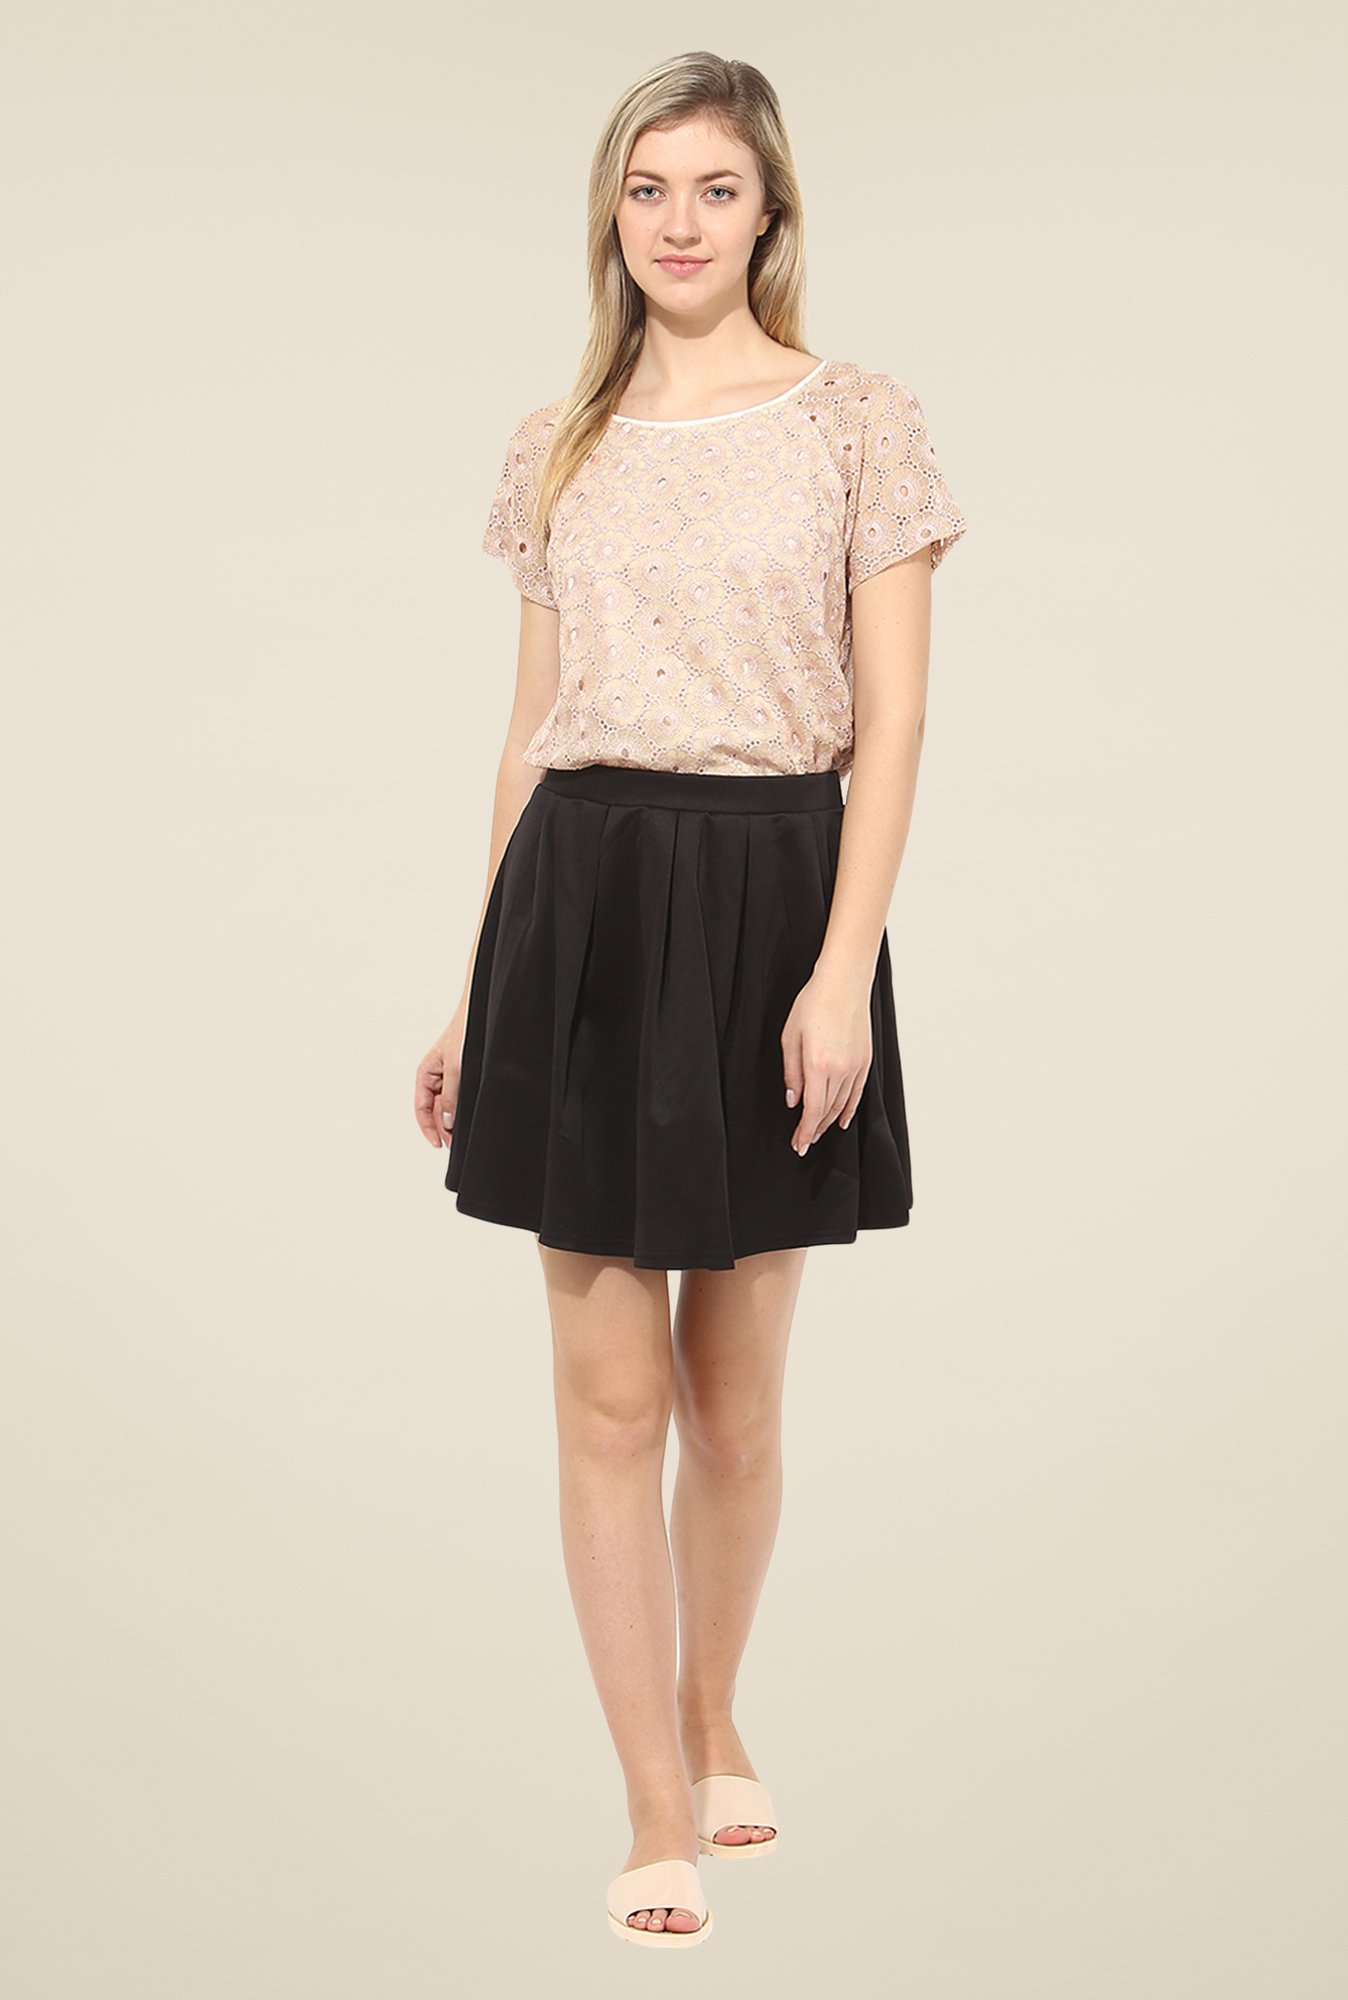 Avirate Pink Embroidered Top